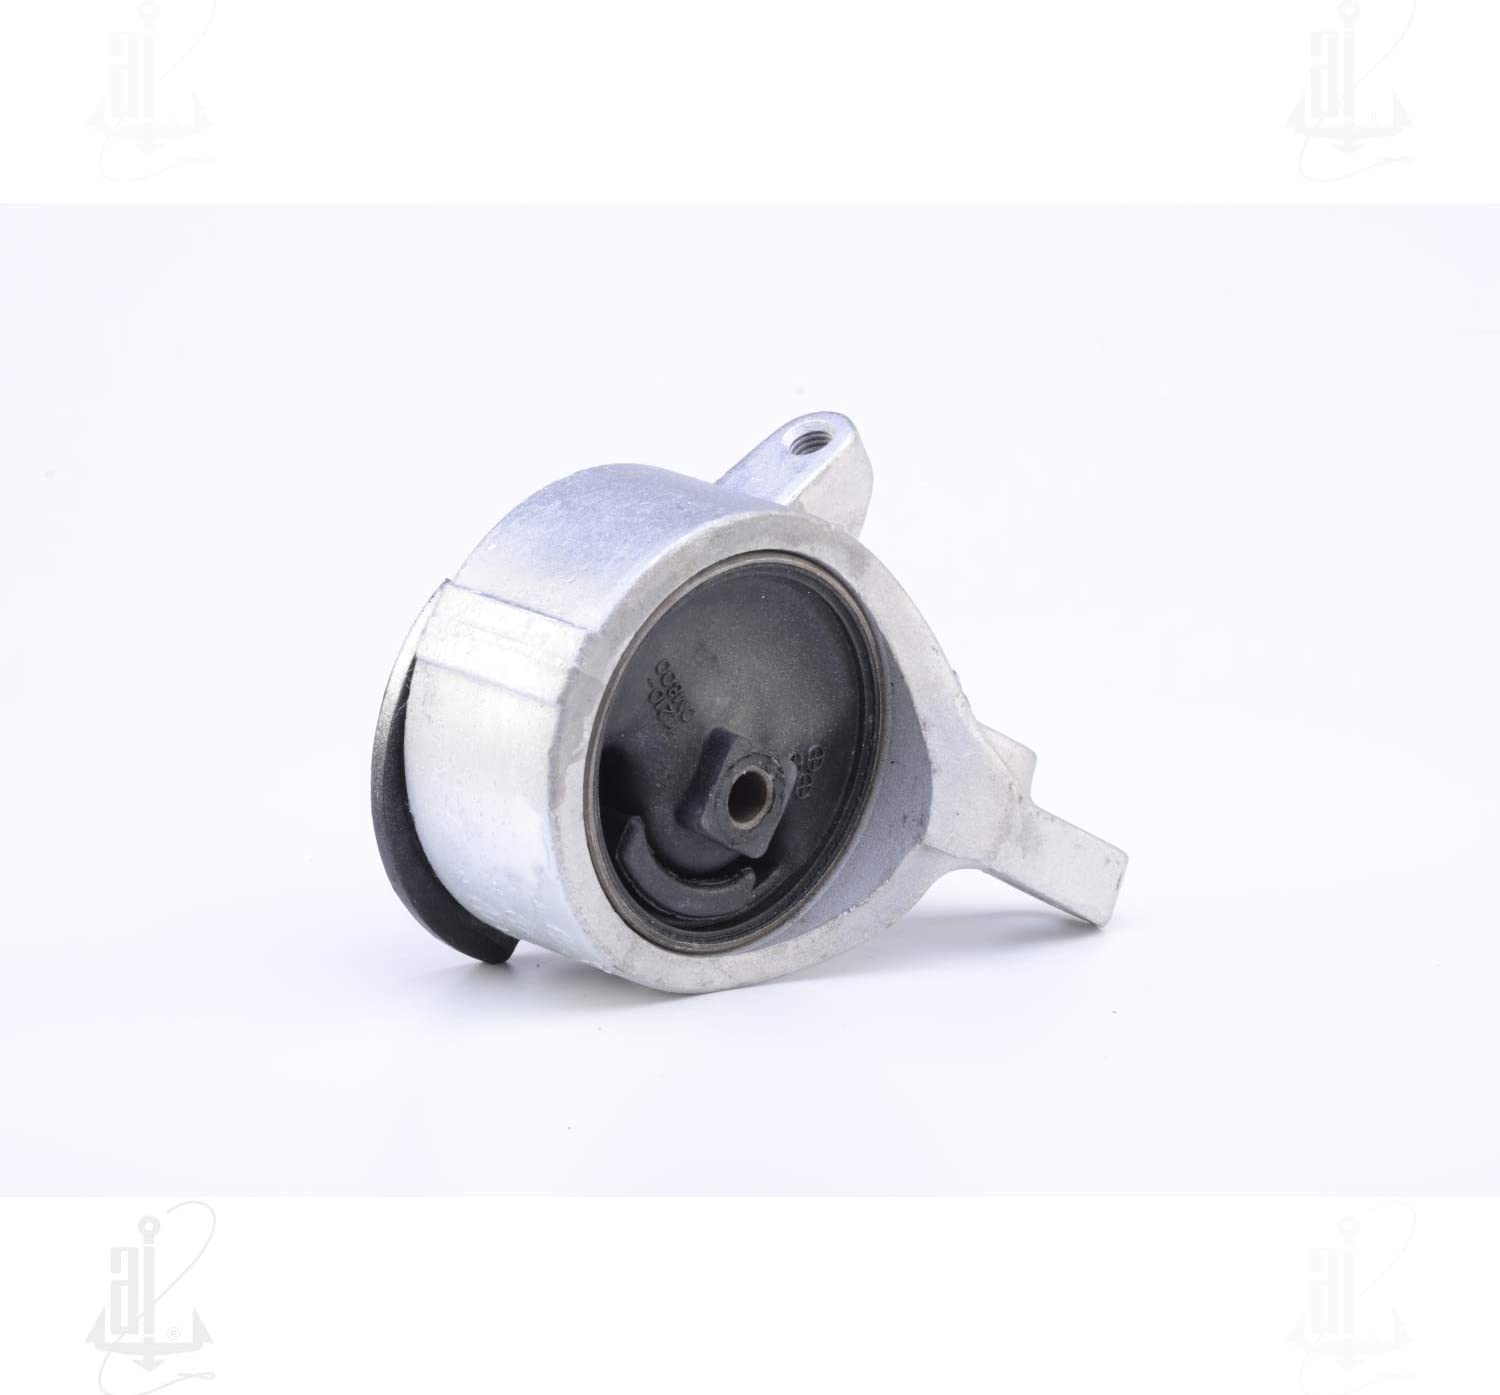 High quality Anchor 8122 Engine Mount Reservation